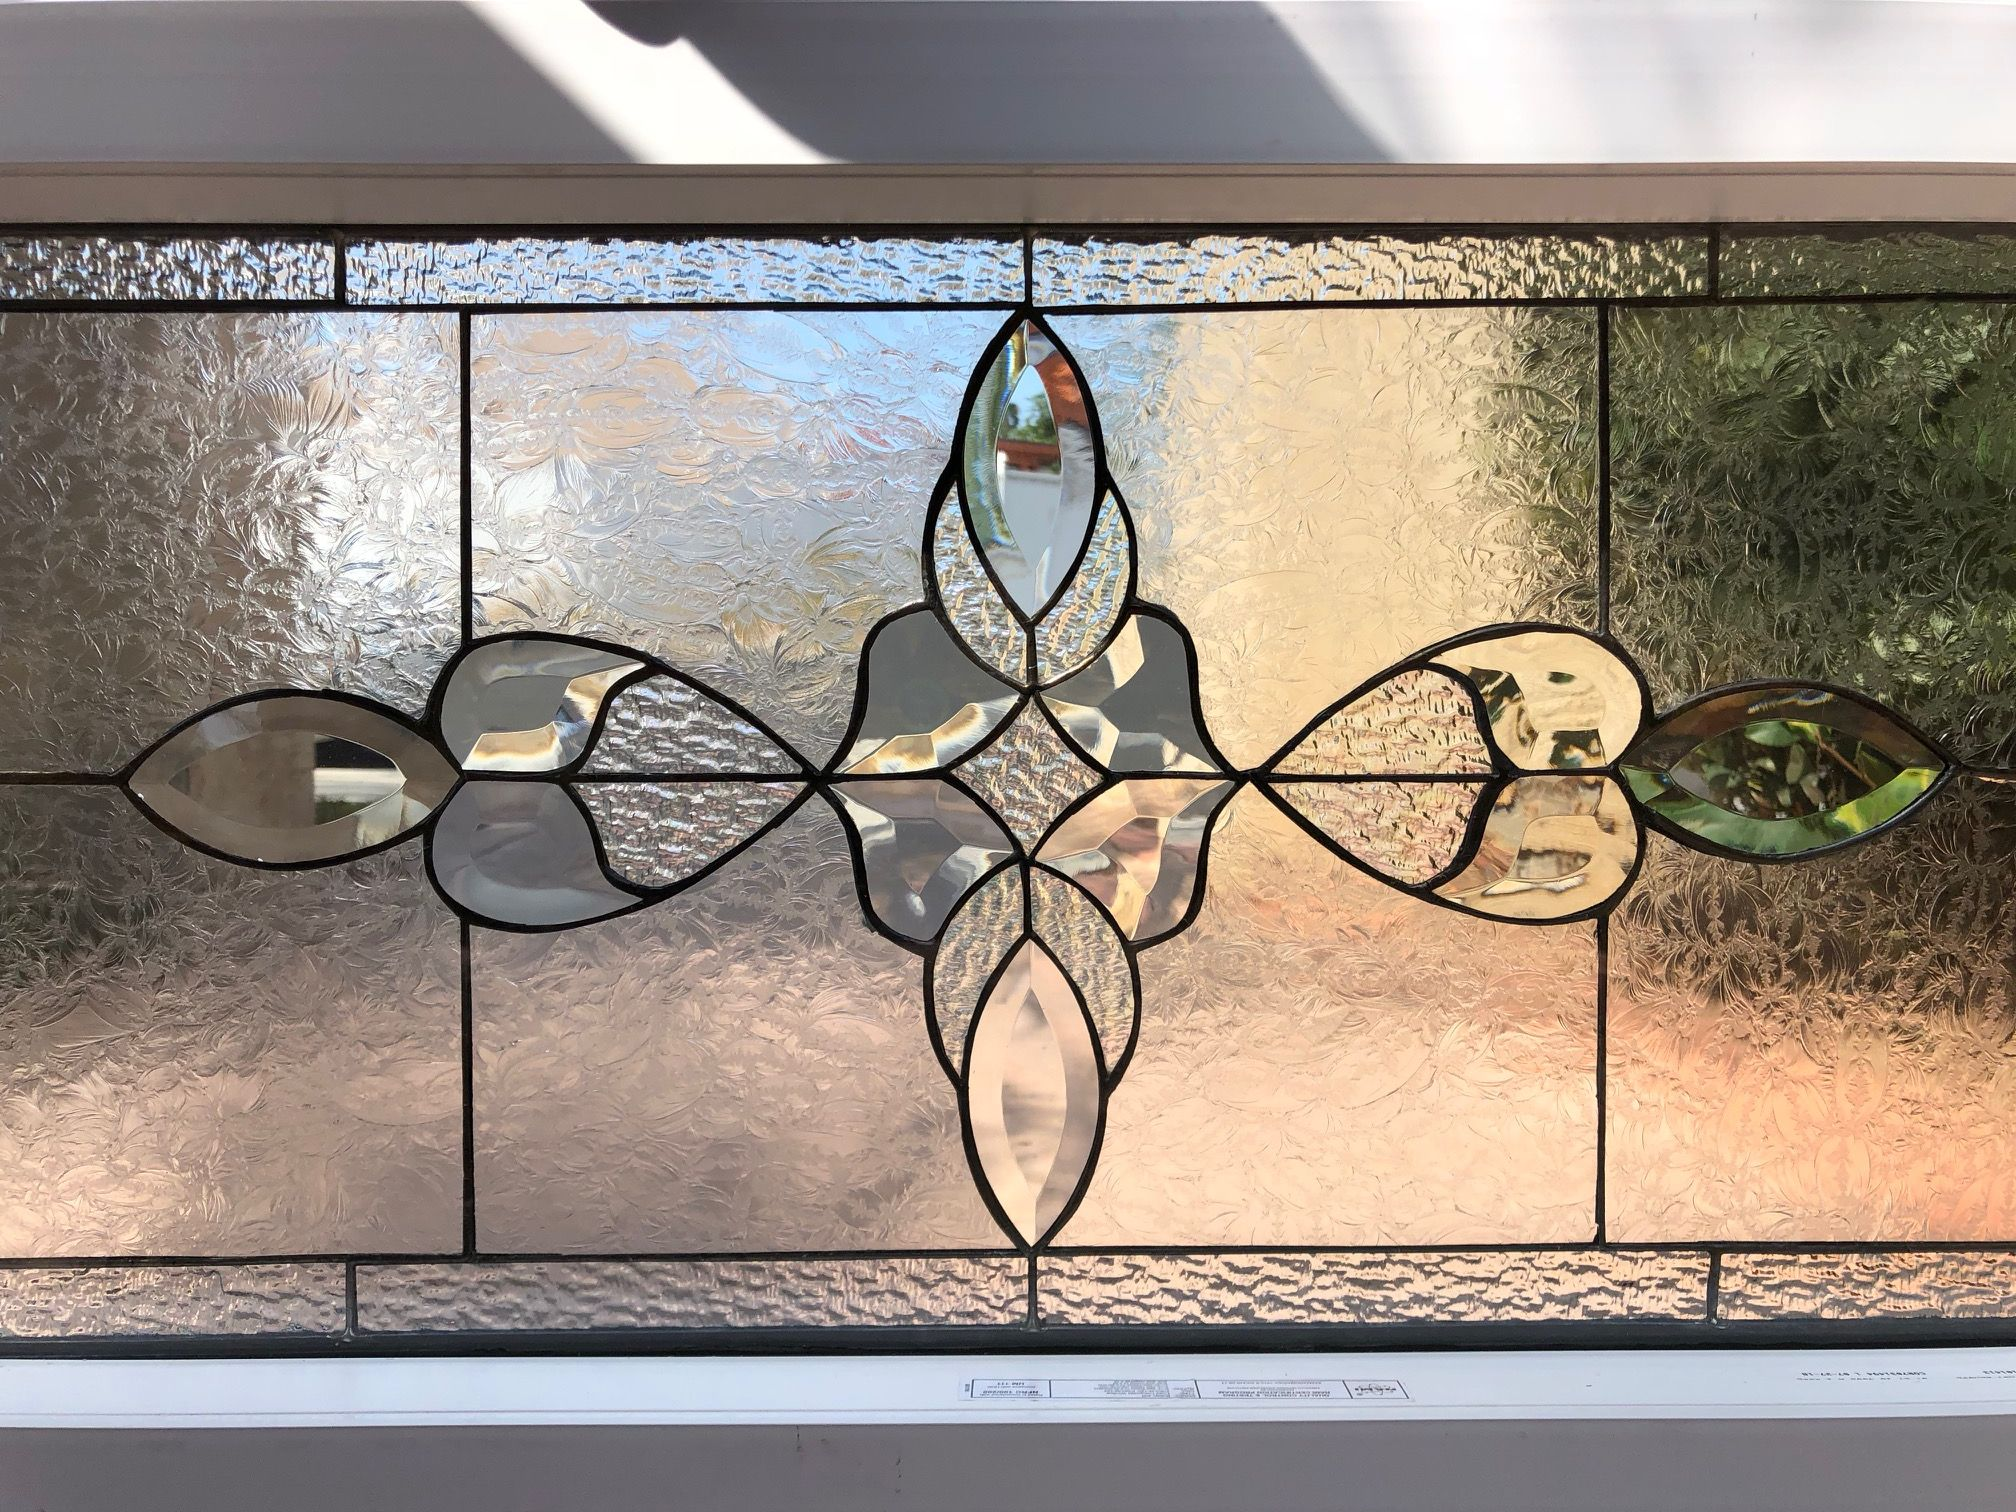 Classic beveled leaded stained glass window insulated in